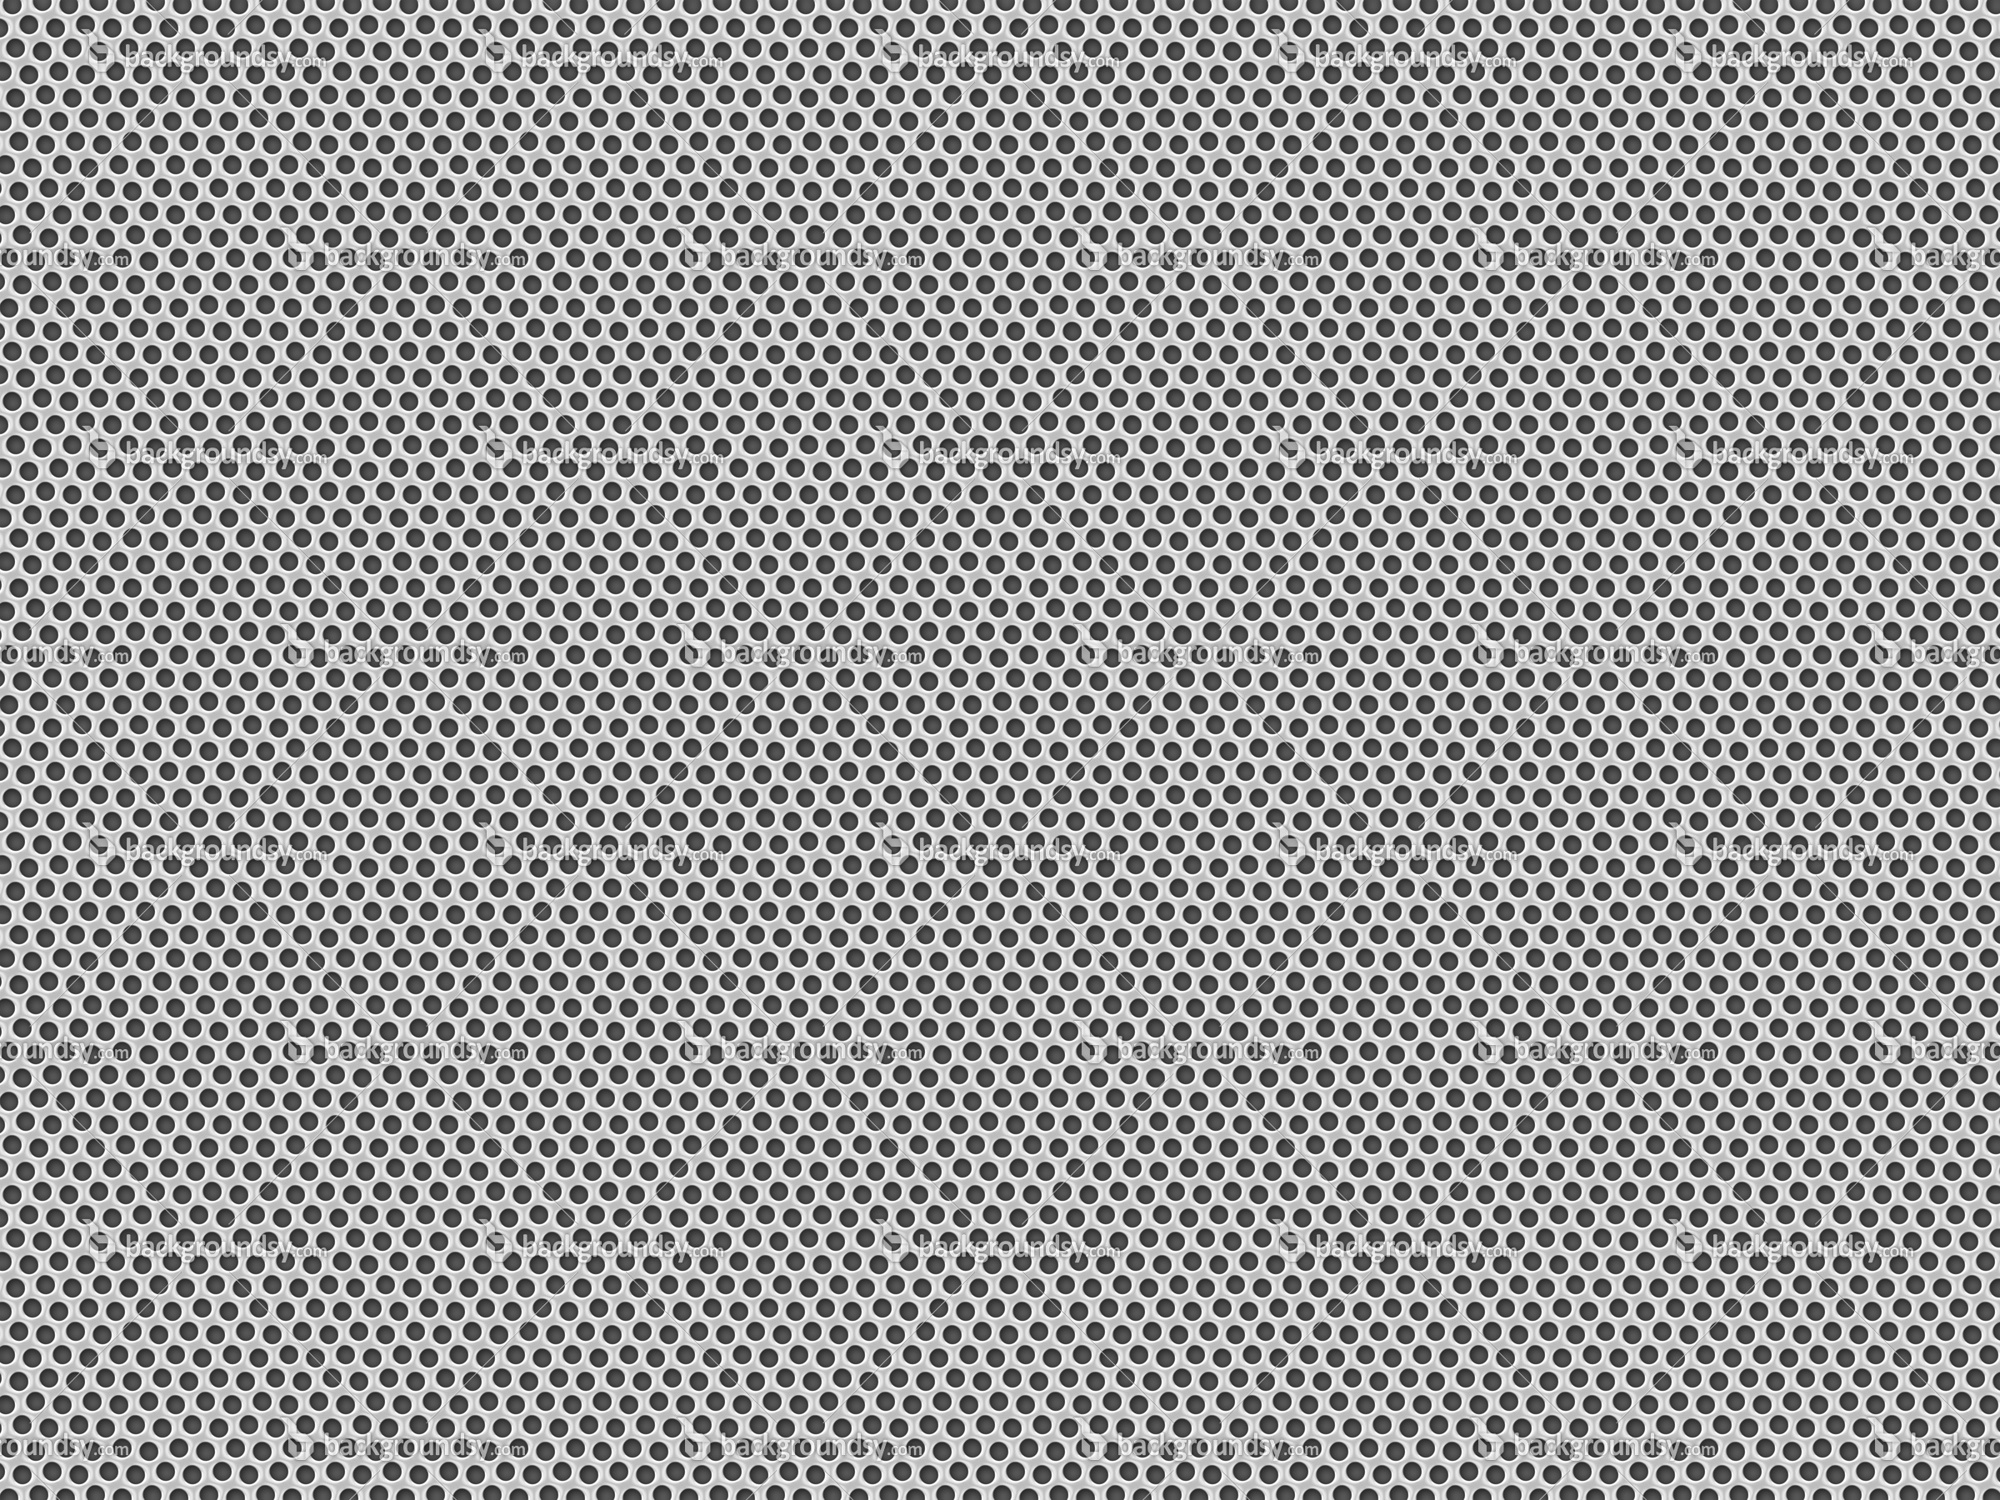 Perforated Aluminum Plate Backgroundsy Com